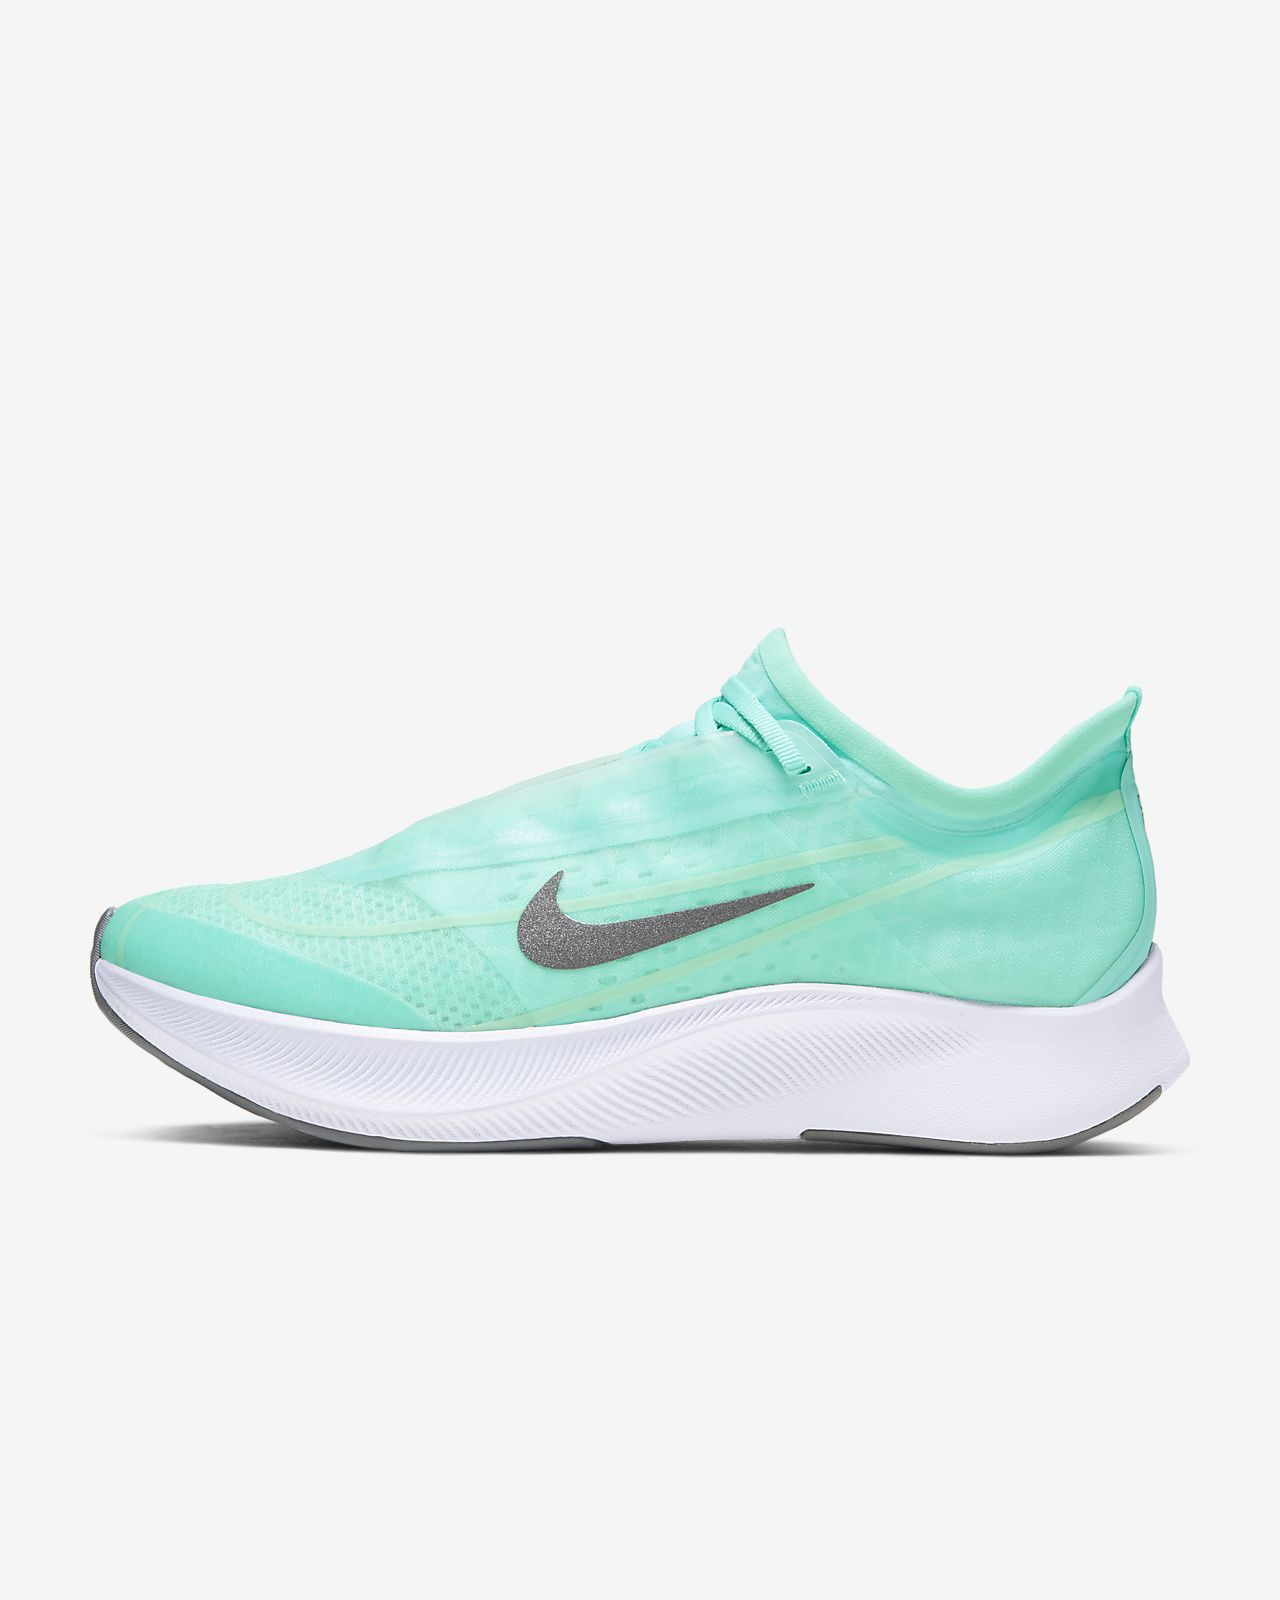 Nike Zoom Fly 3 Women's Running Shoe